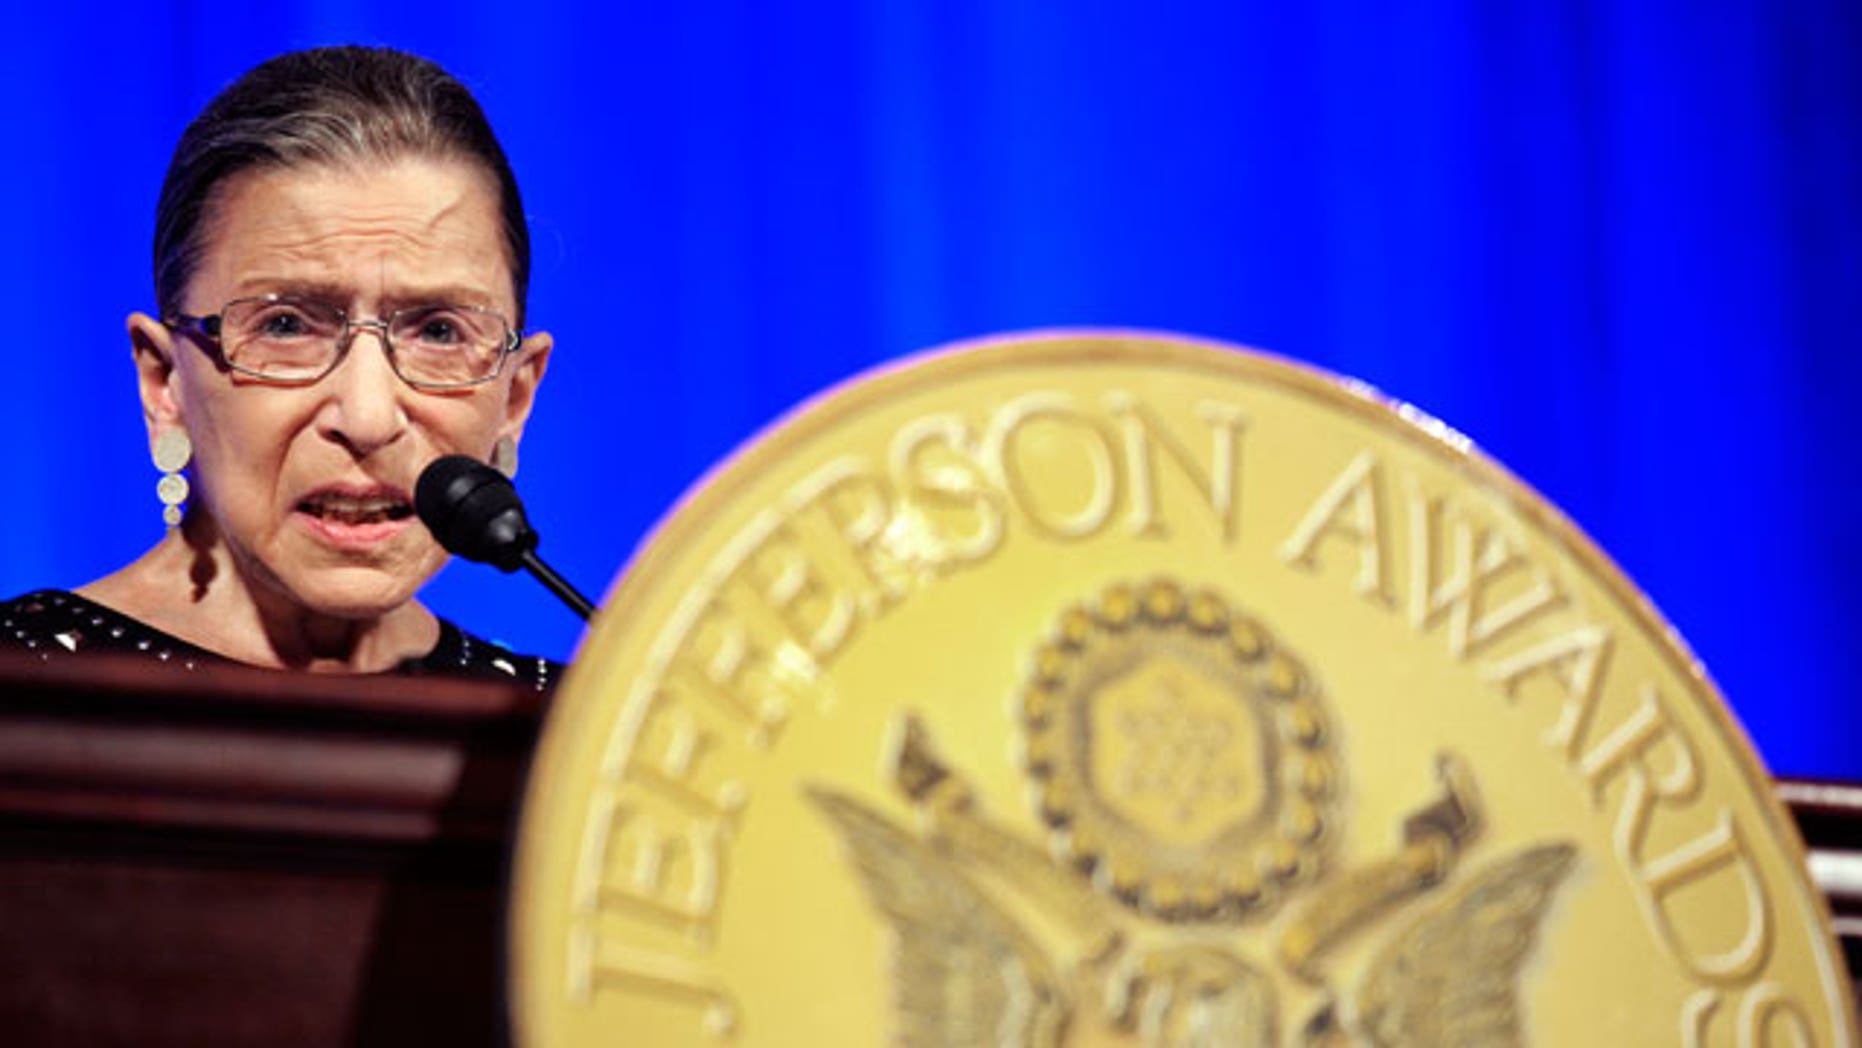 Supreme Court Associate Justice Ruth Bader Ginsburg makes remarks after being awarded a Jefferson Awards for Public Service at the National Building Museum in Washington, Tuesday, June 21, 2011.